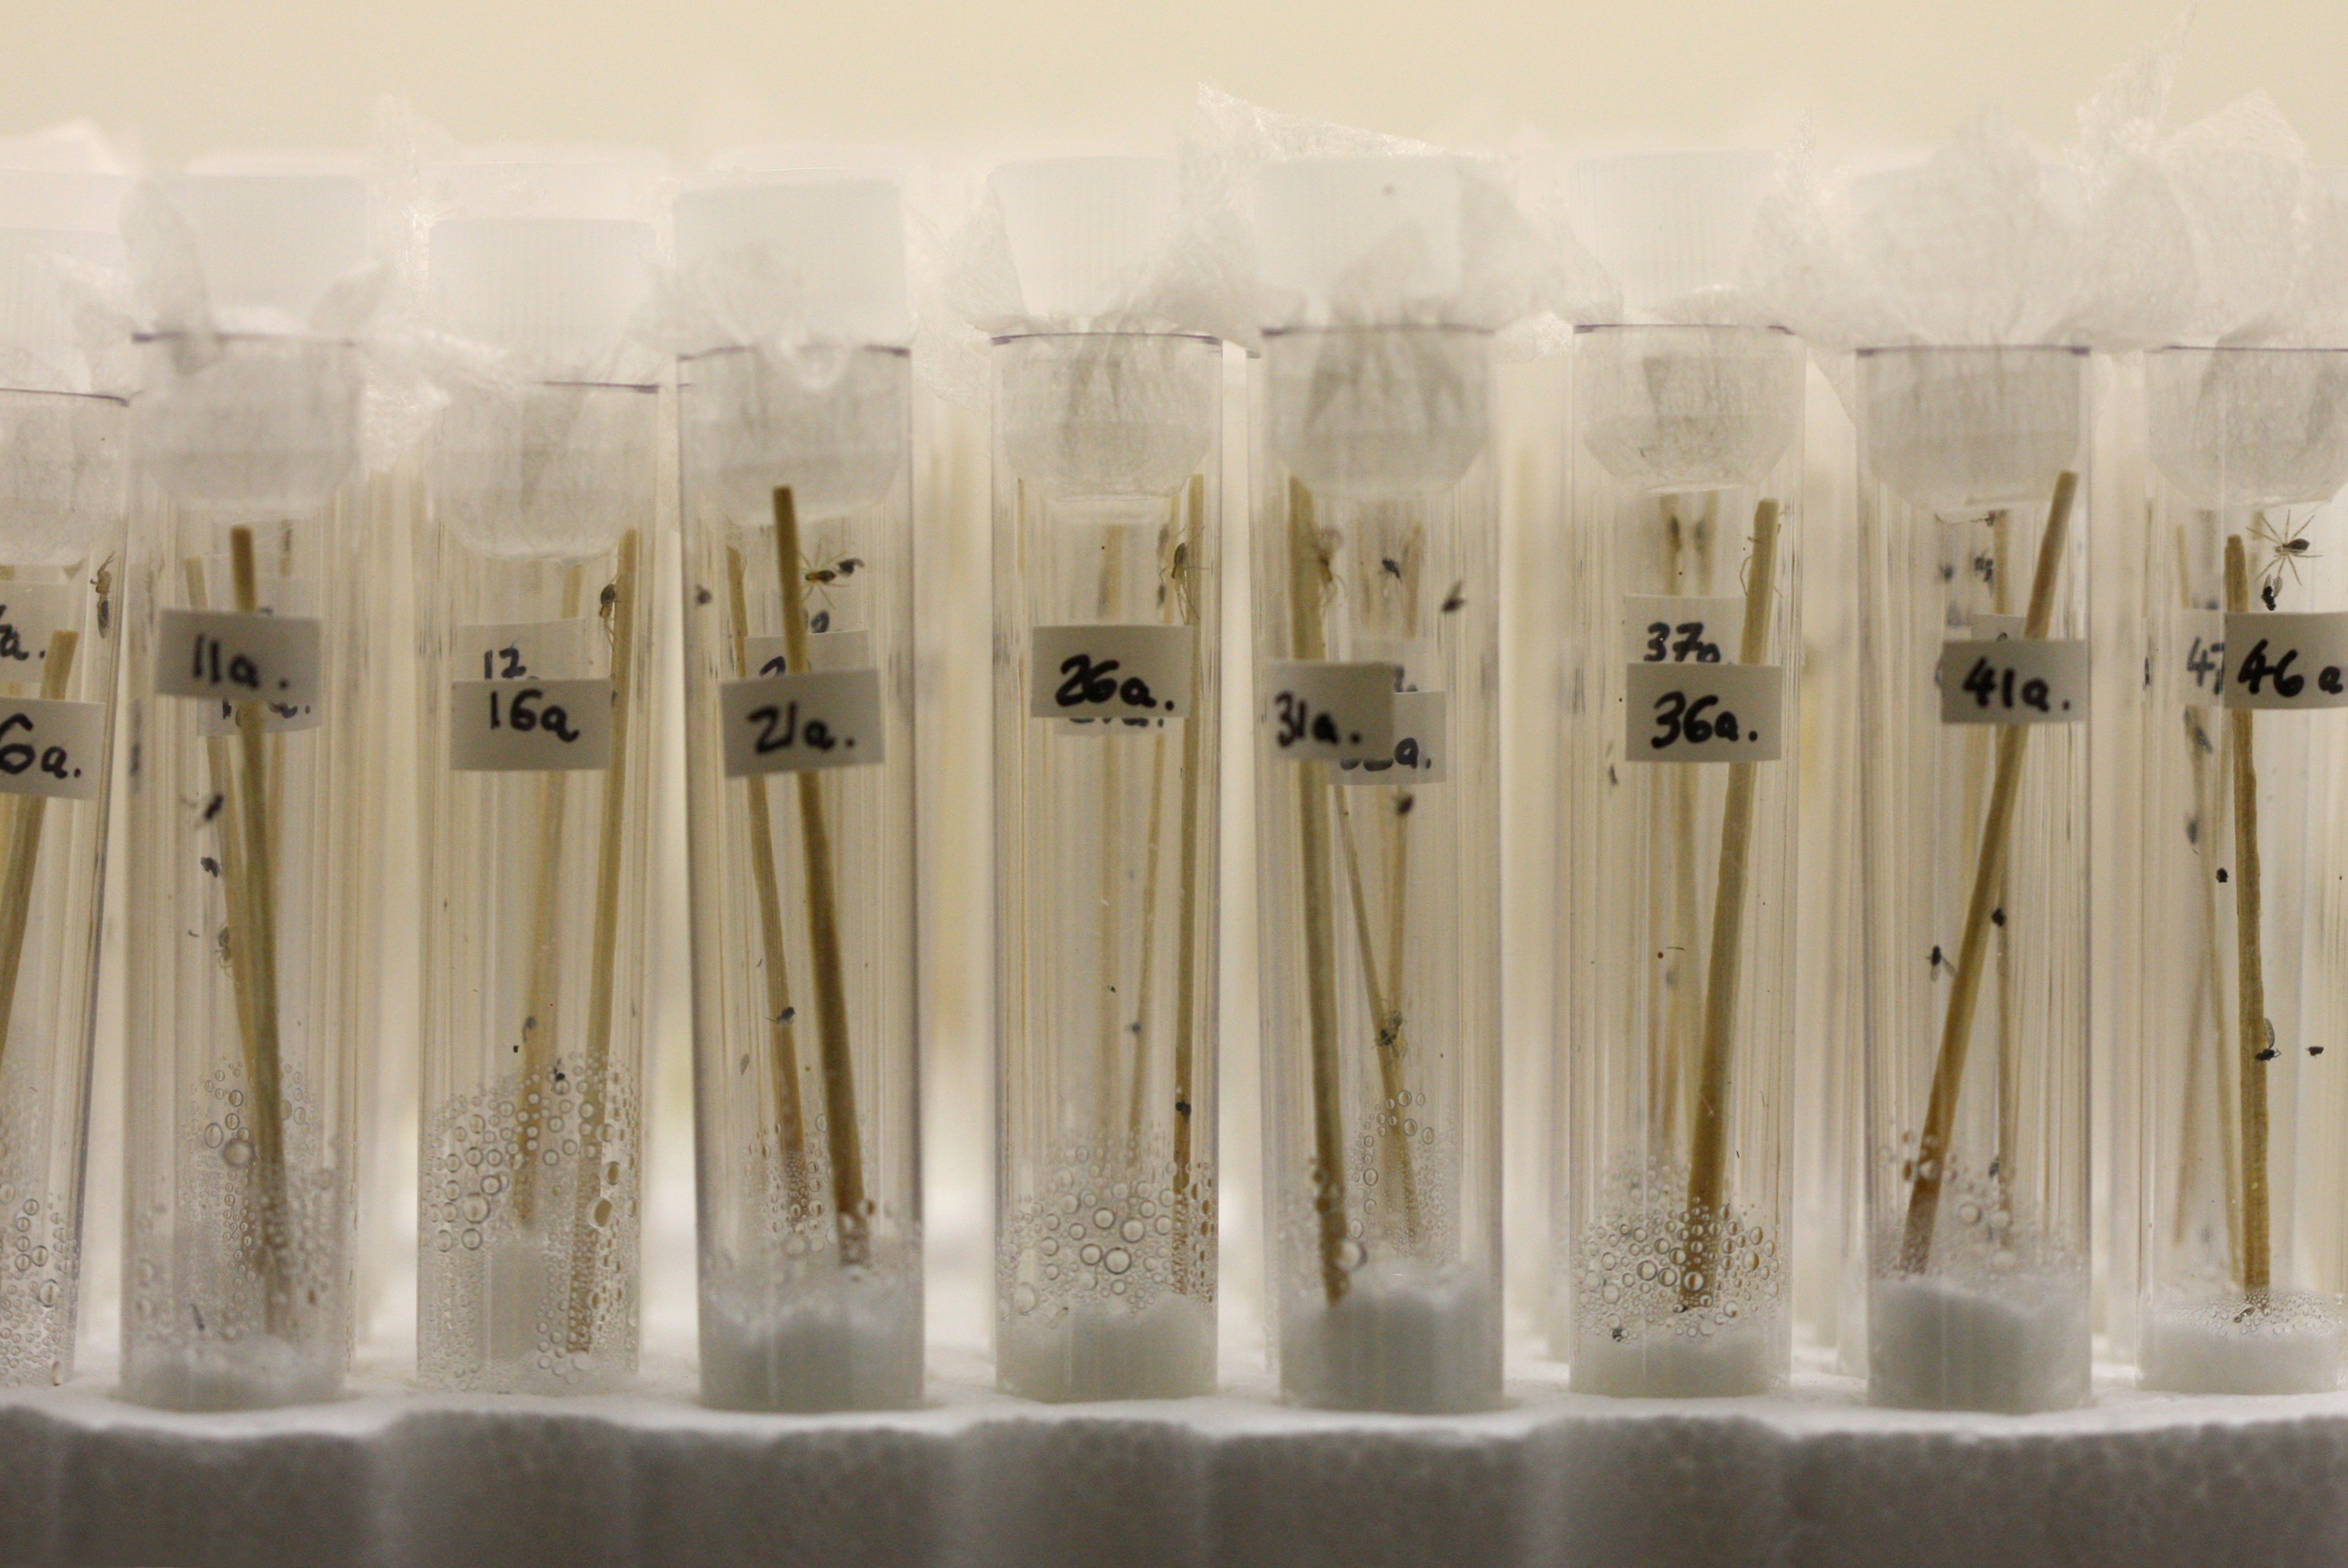 Rearing tiny spiderlings individually in test tubes gave over 90% survival